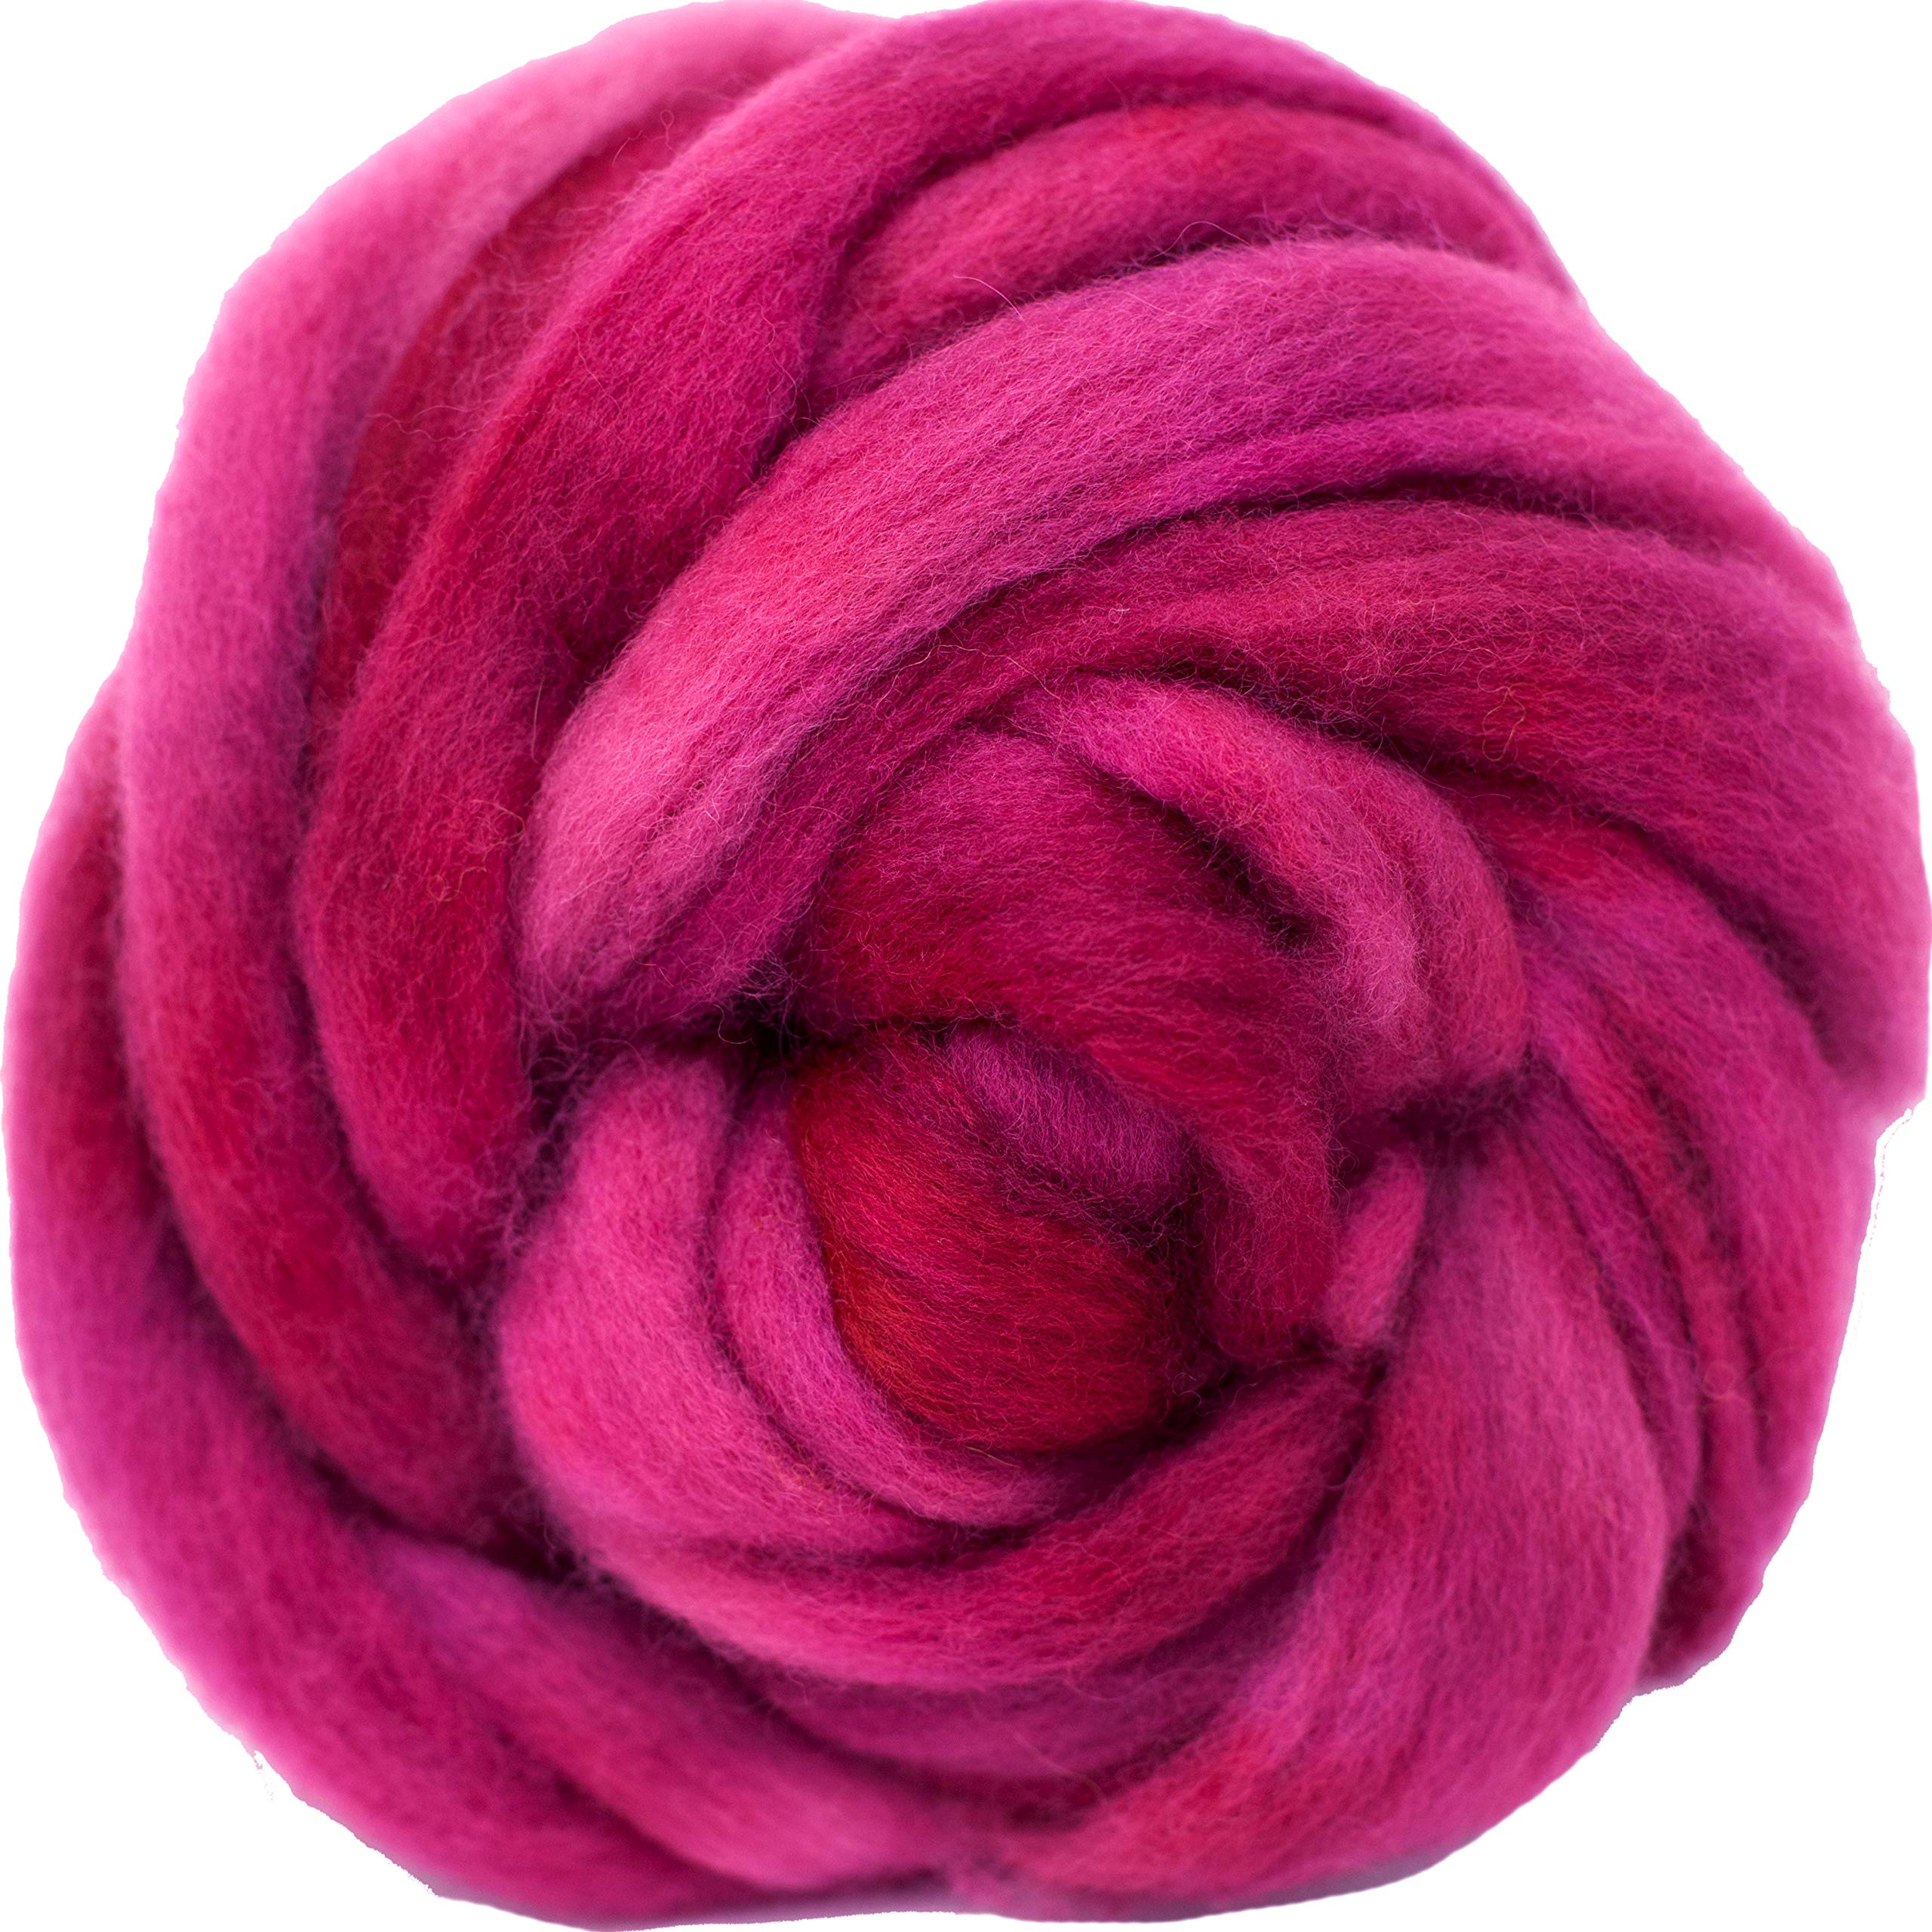 Wool Roving Hand Dyed. Super Soft BFL Combed Top Pre-Drafted for Easy Hand Spinning. Artisanal Craft Fiber ideal for Felting, Weaving, Wall Hangings and Embellishments. 1 Ounce. Cherry